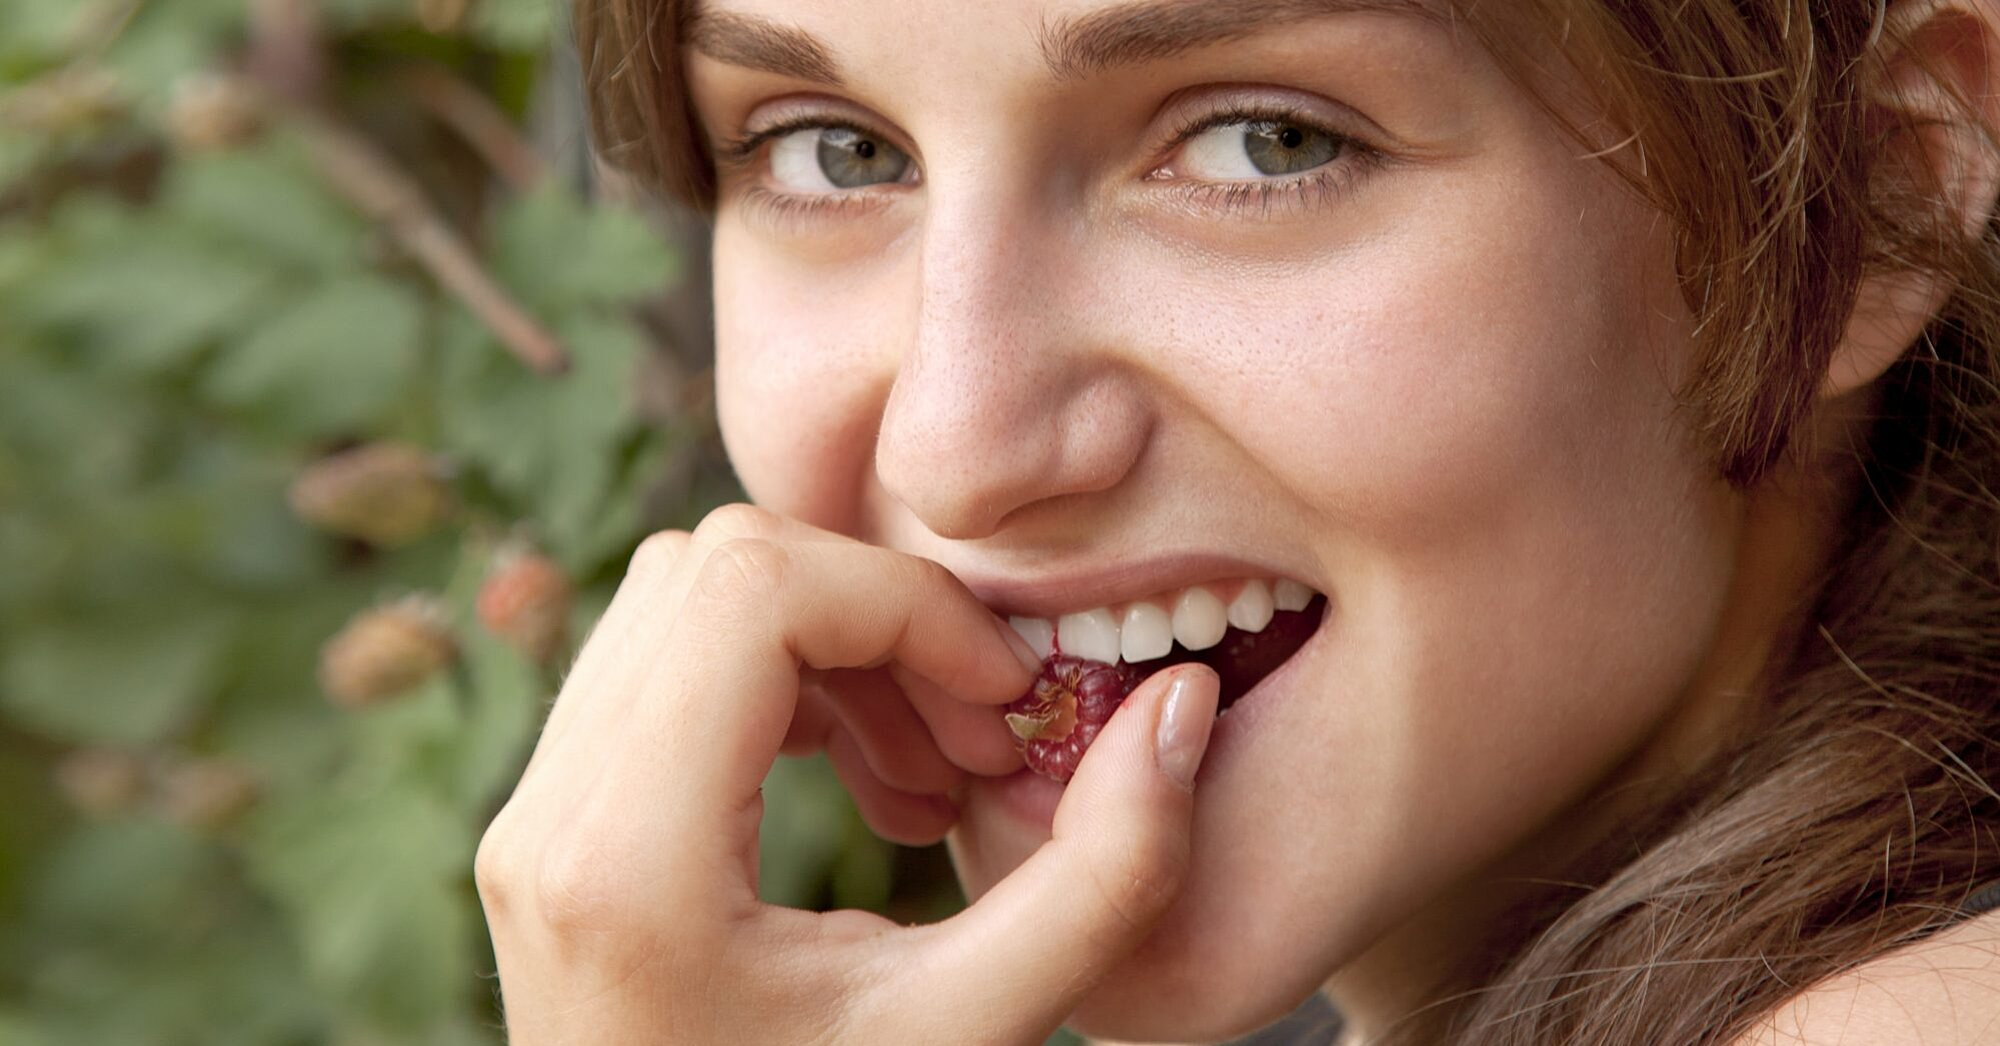 Sensitive Teeth Are an Actual Pain—and These 4 Habits Can Make It Worse